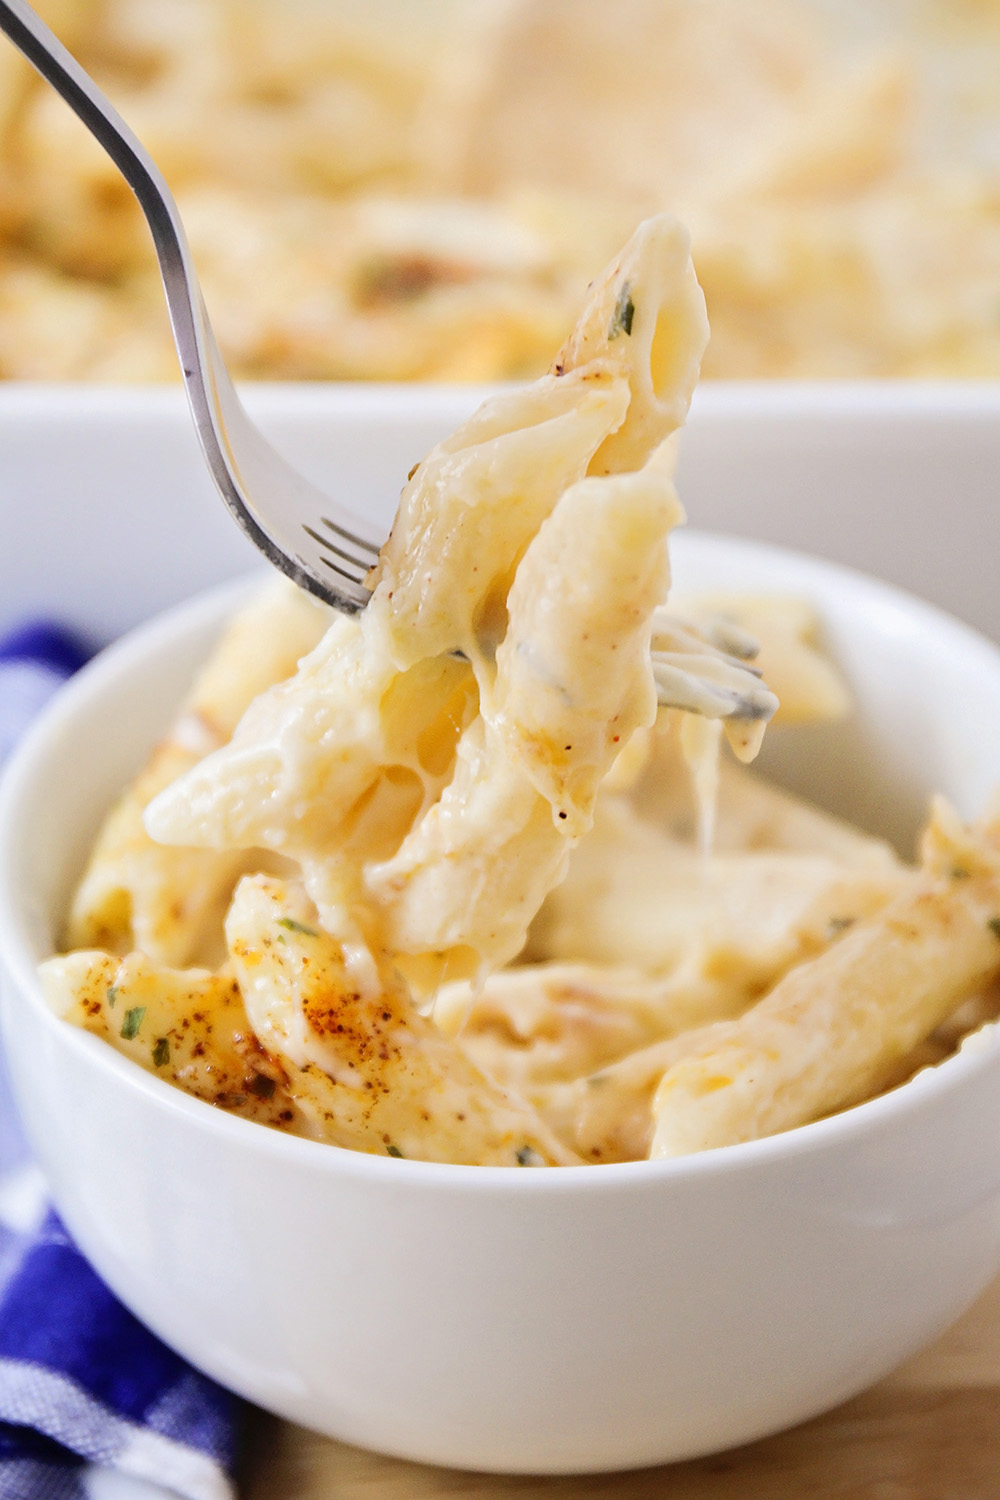 This Beecher's Mac and Cheese recipe is truly the world's best! It's so thick and creamy and has an amazing cheesy flavor!